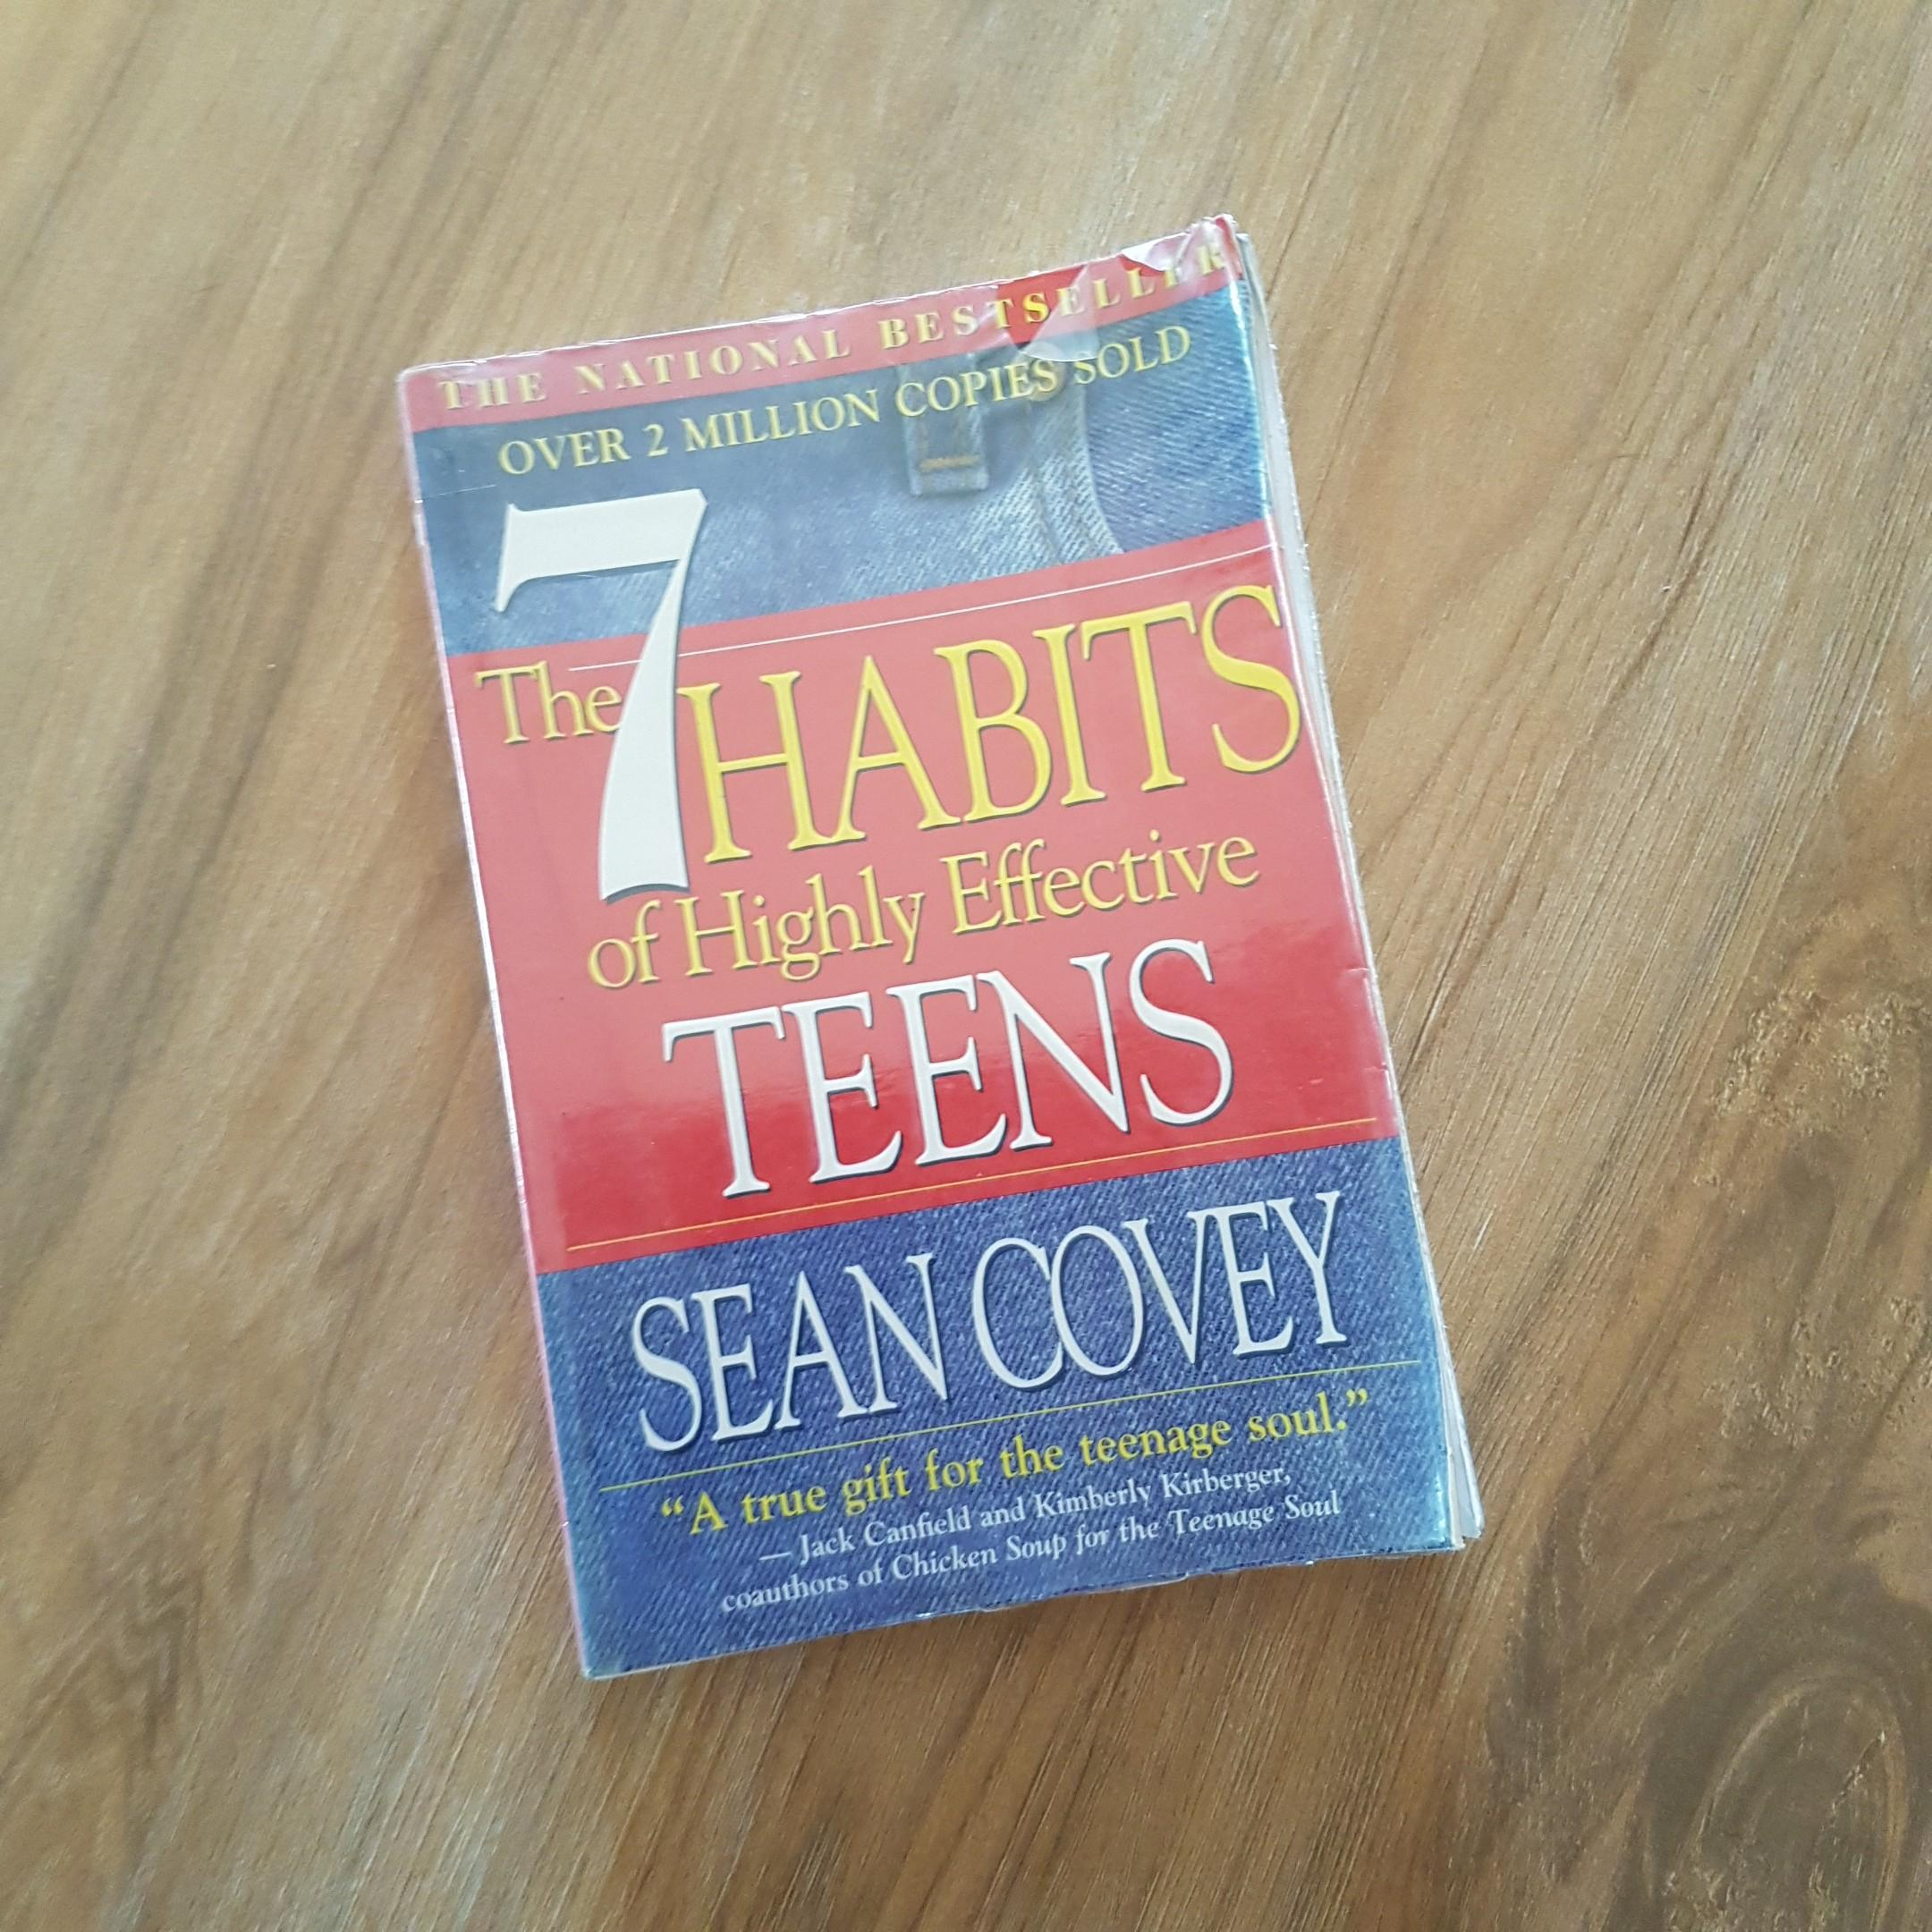 7 Habits of Highly Effective Teens by Sean Covey (book)